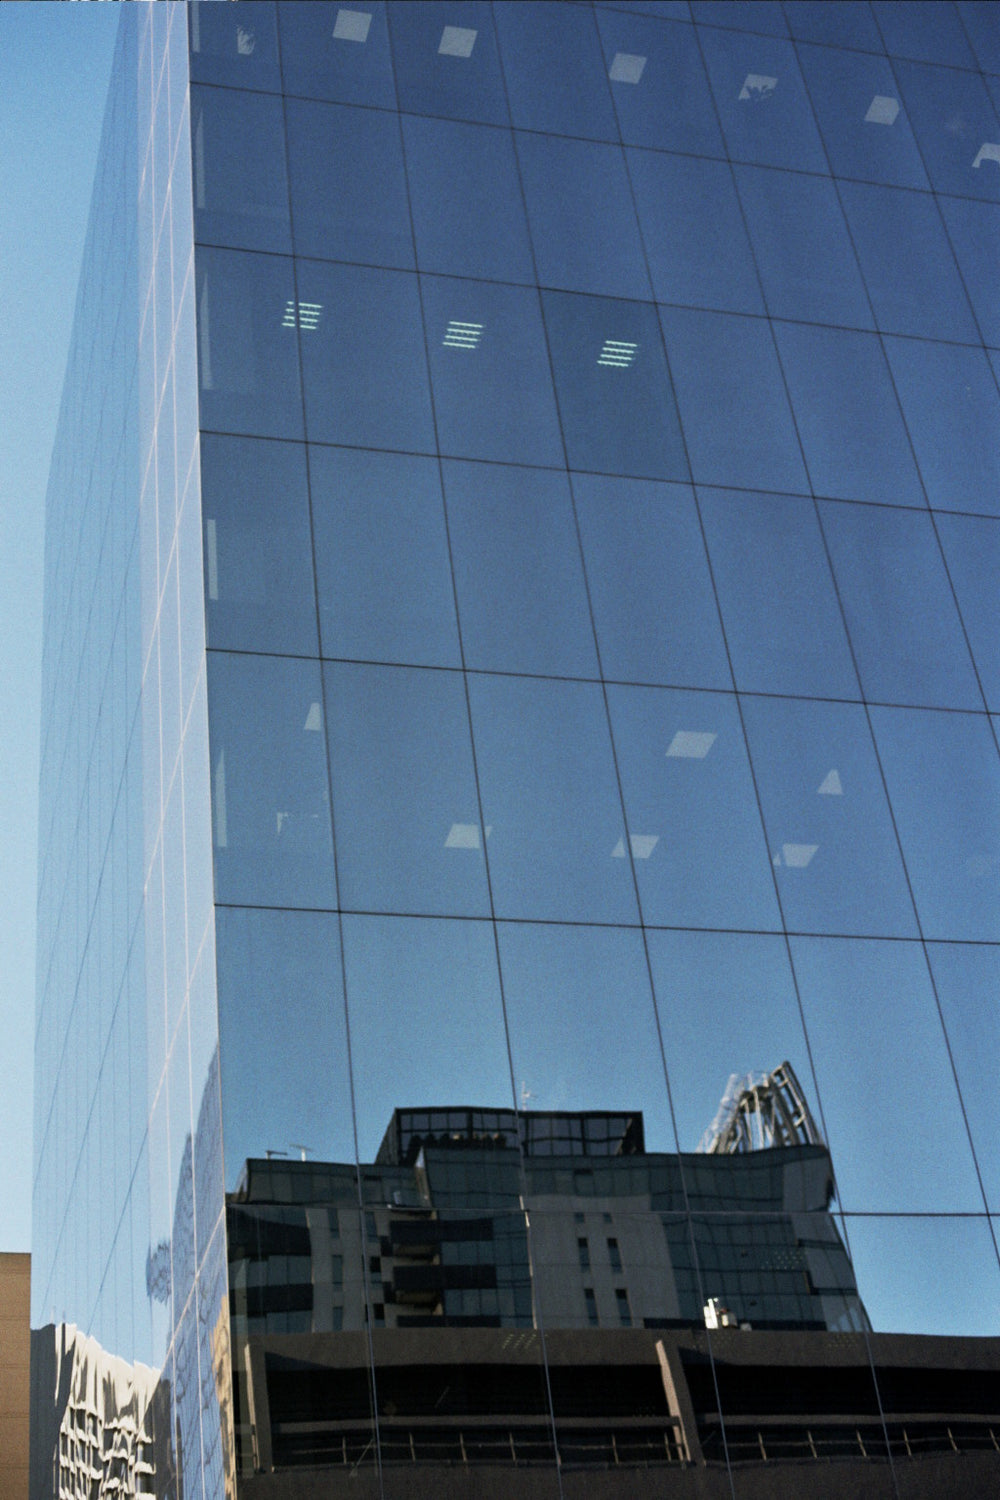 Image of a skycraper building with reflective glass panels on the outside displaying a reflection of the sky and other buildings.